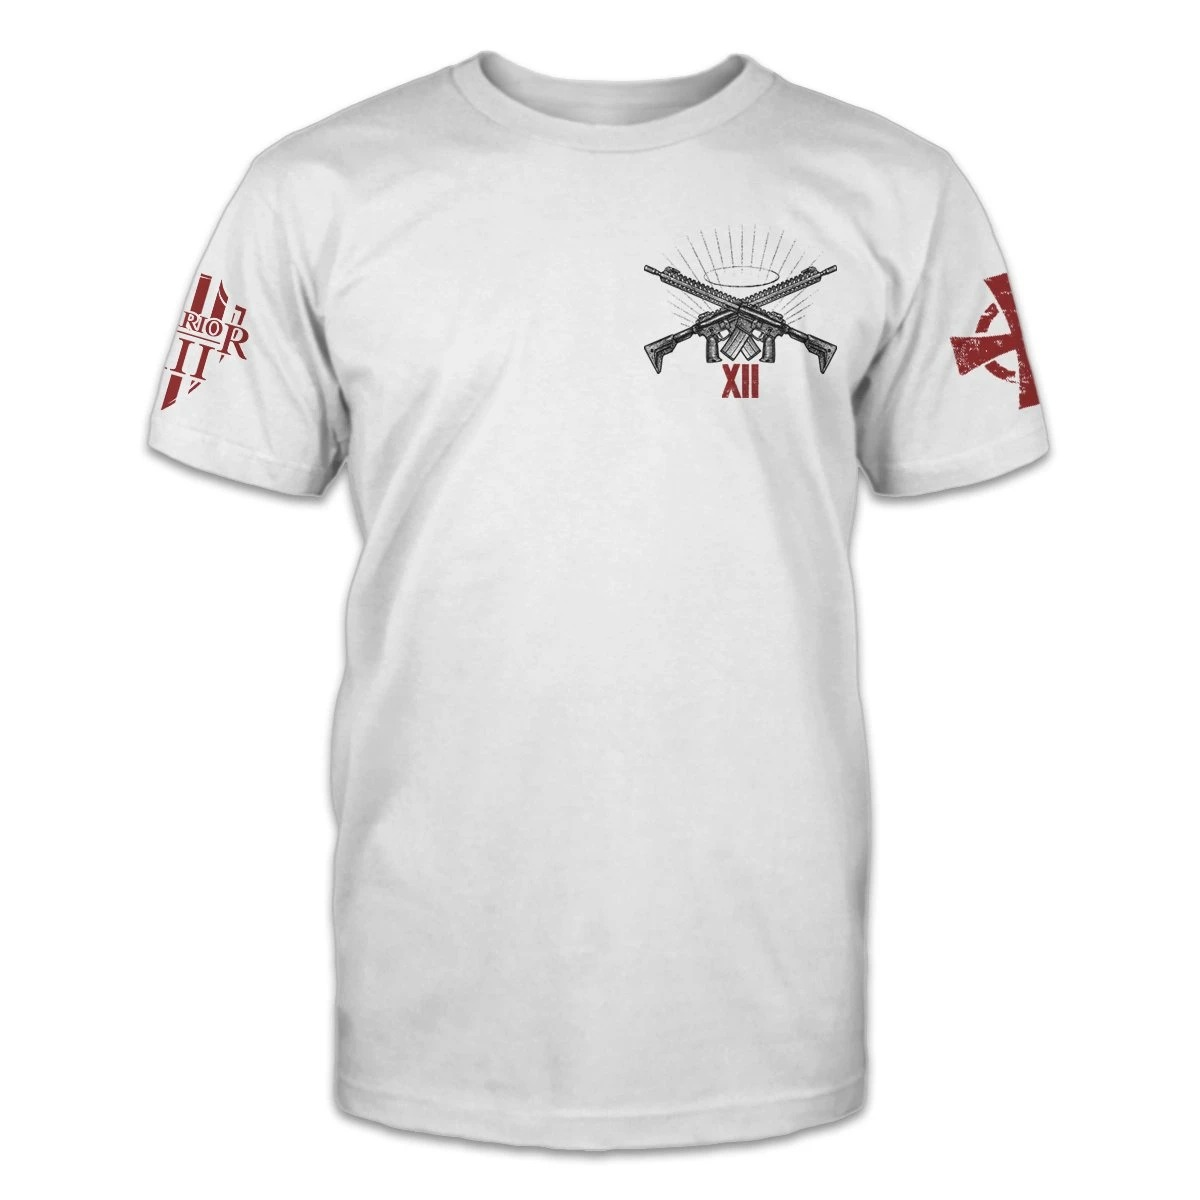 God gave his archagels weapons because even the almighty knew 3d shirt3